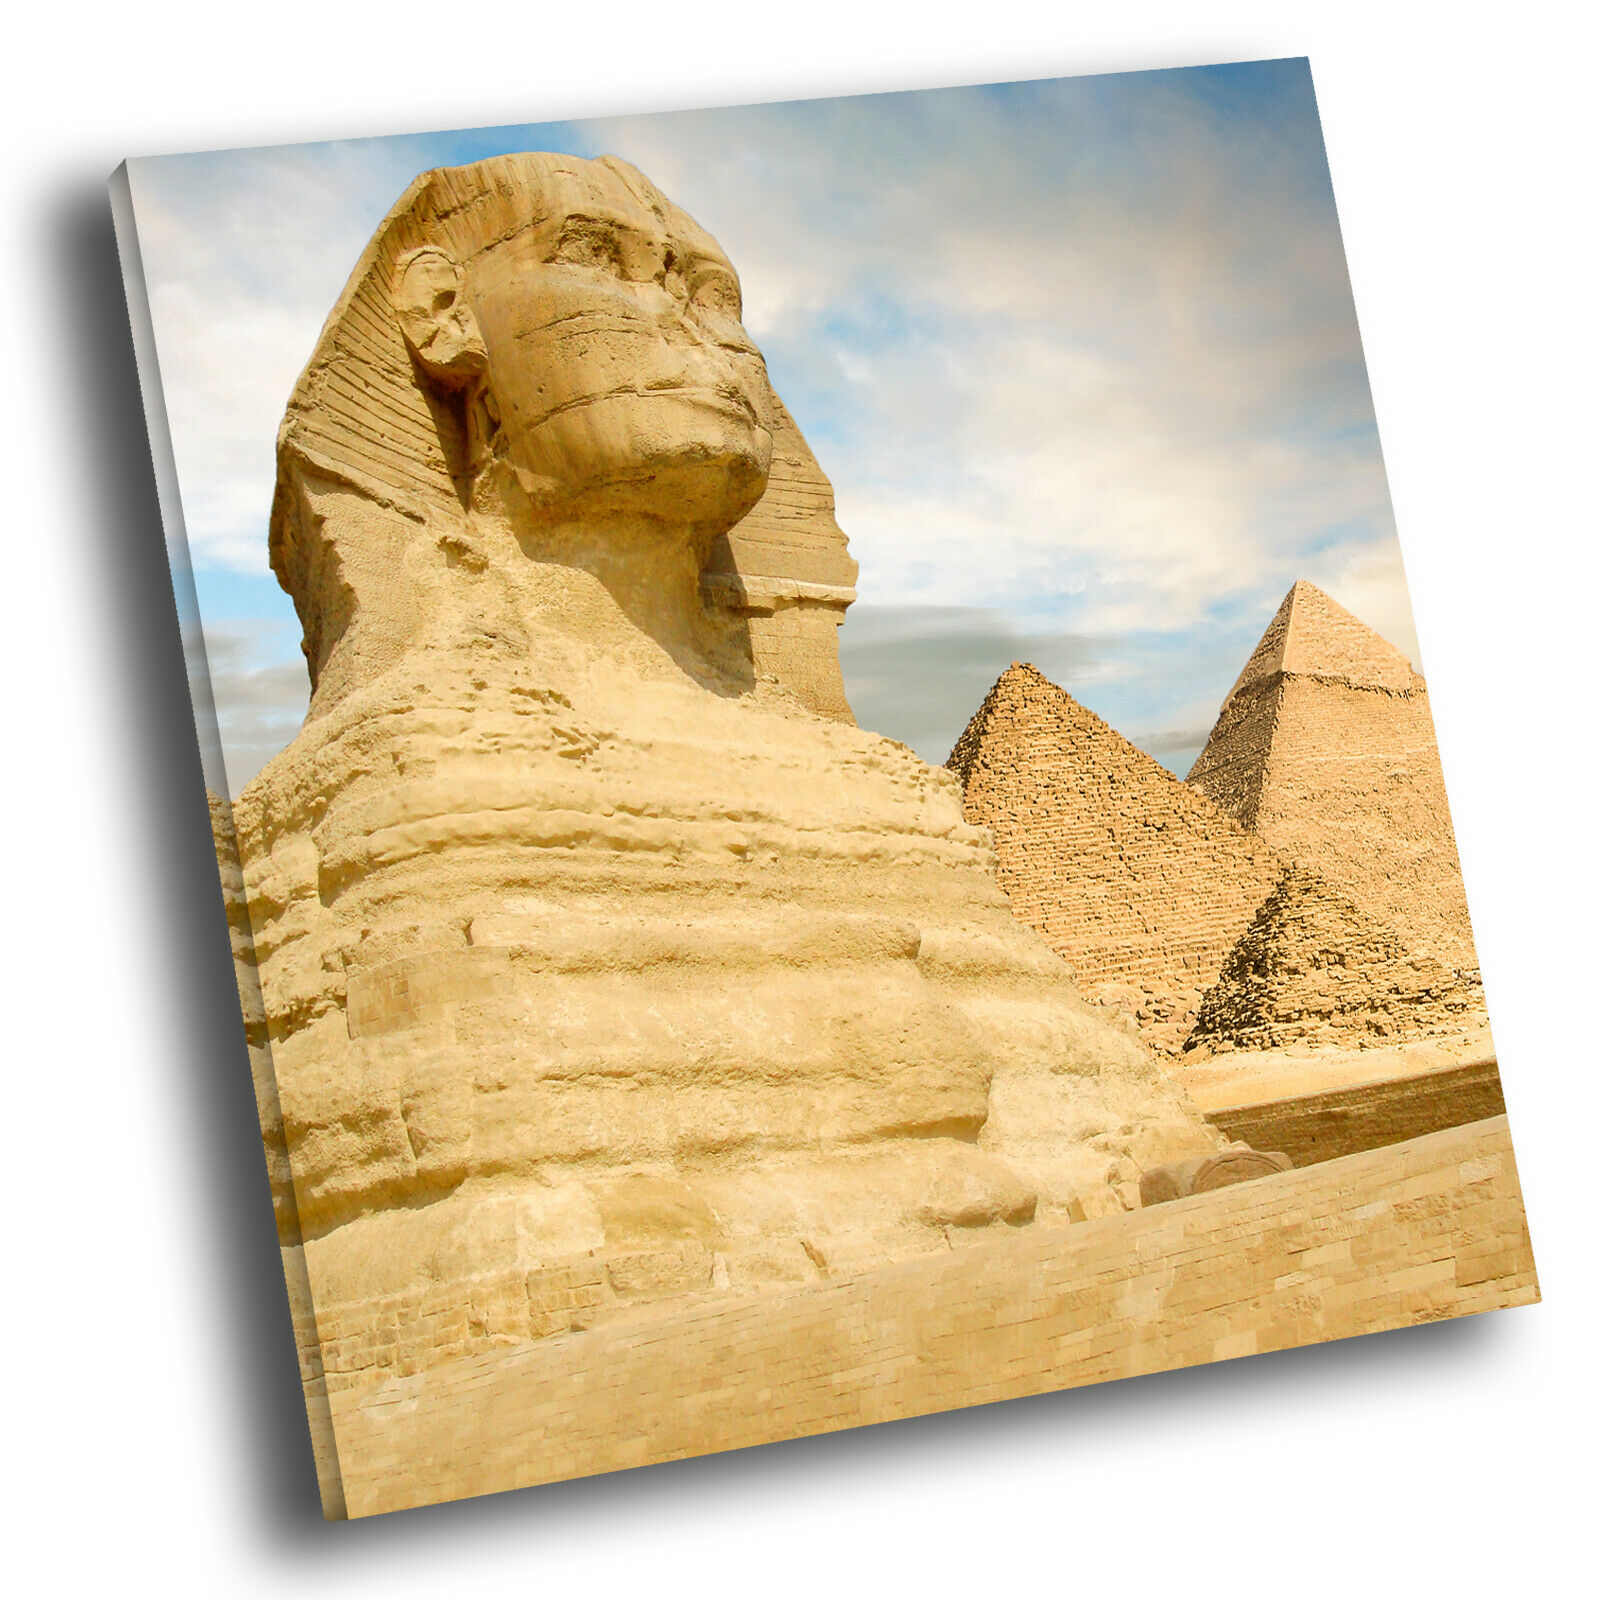 Blau Gelb Sphinx Egypt Square Scenic Canvas Wall Art Large Picture Print